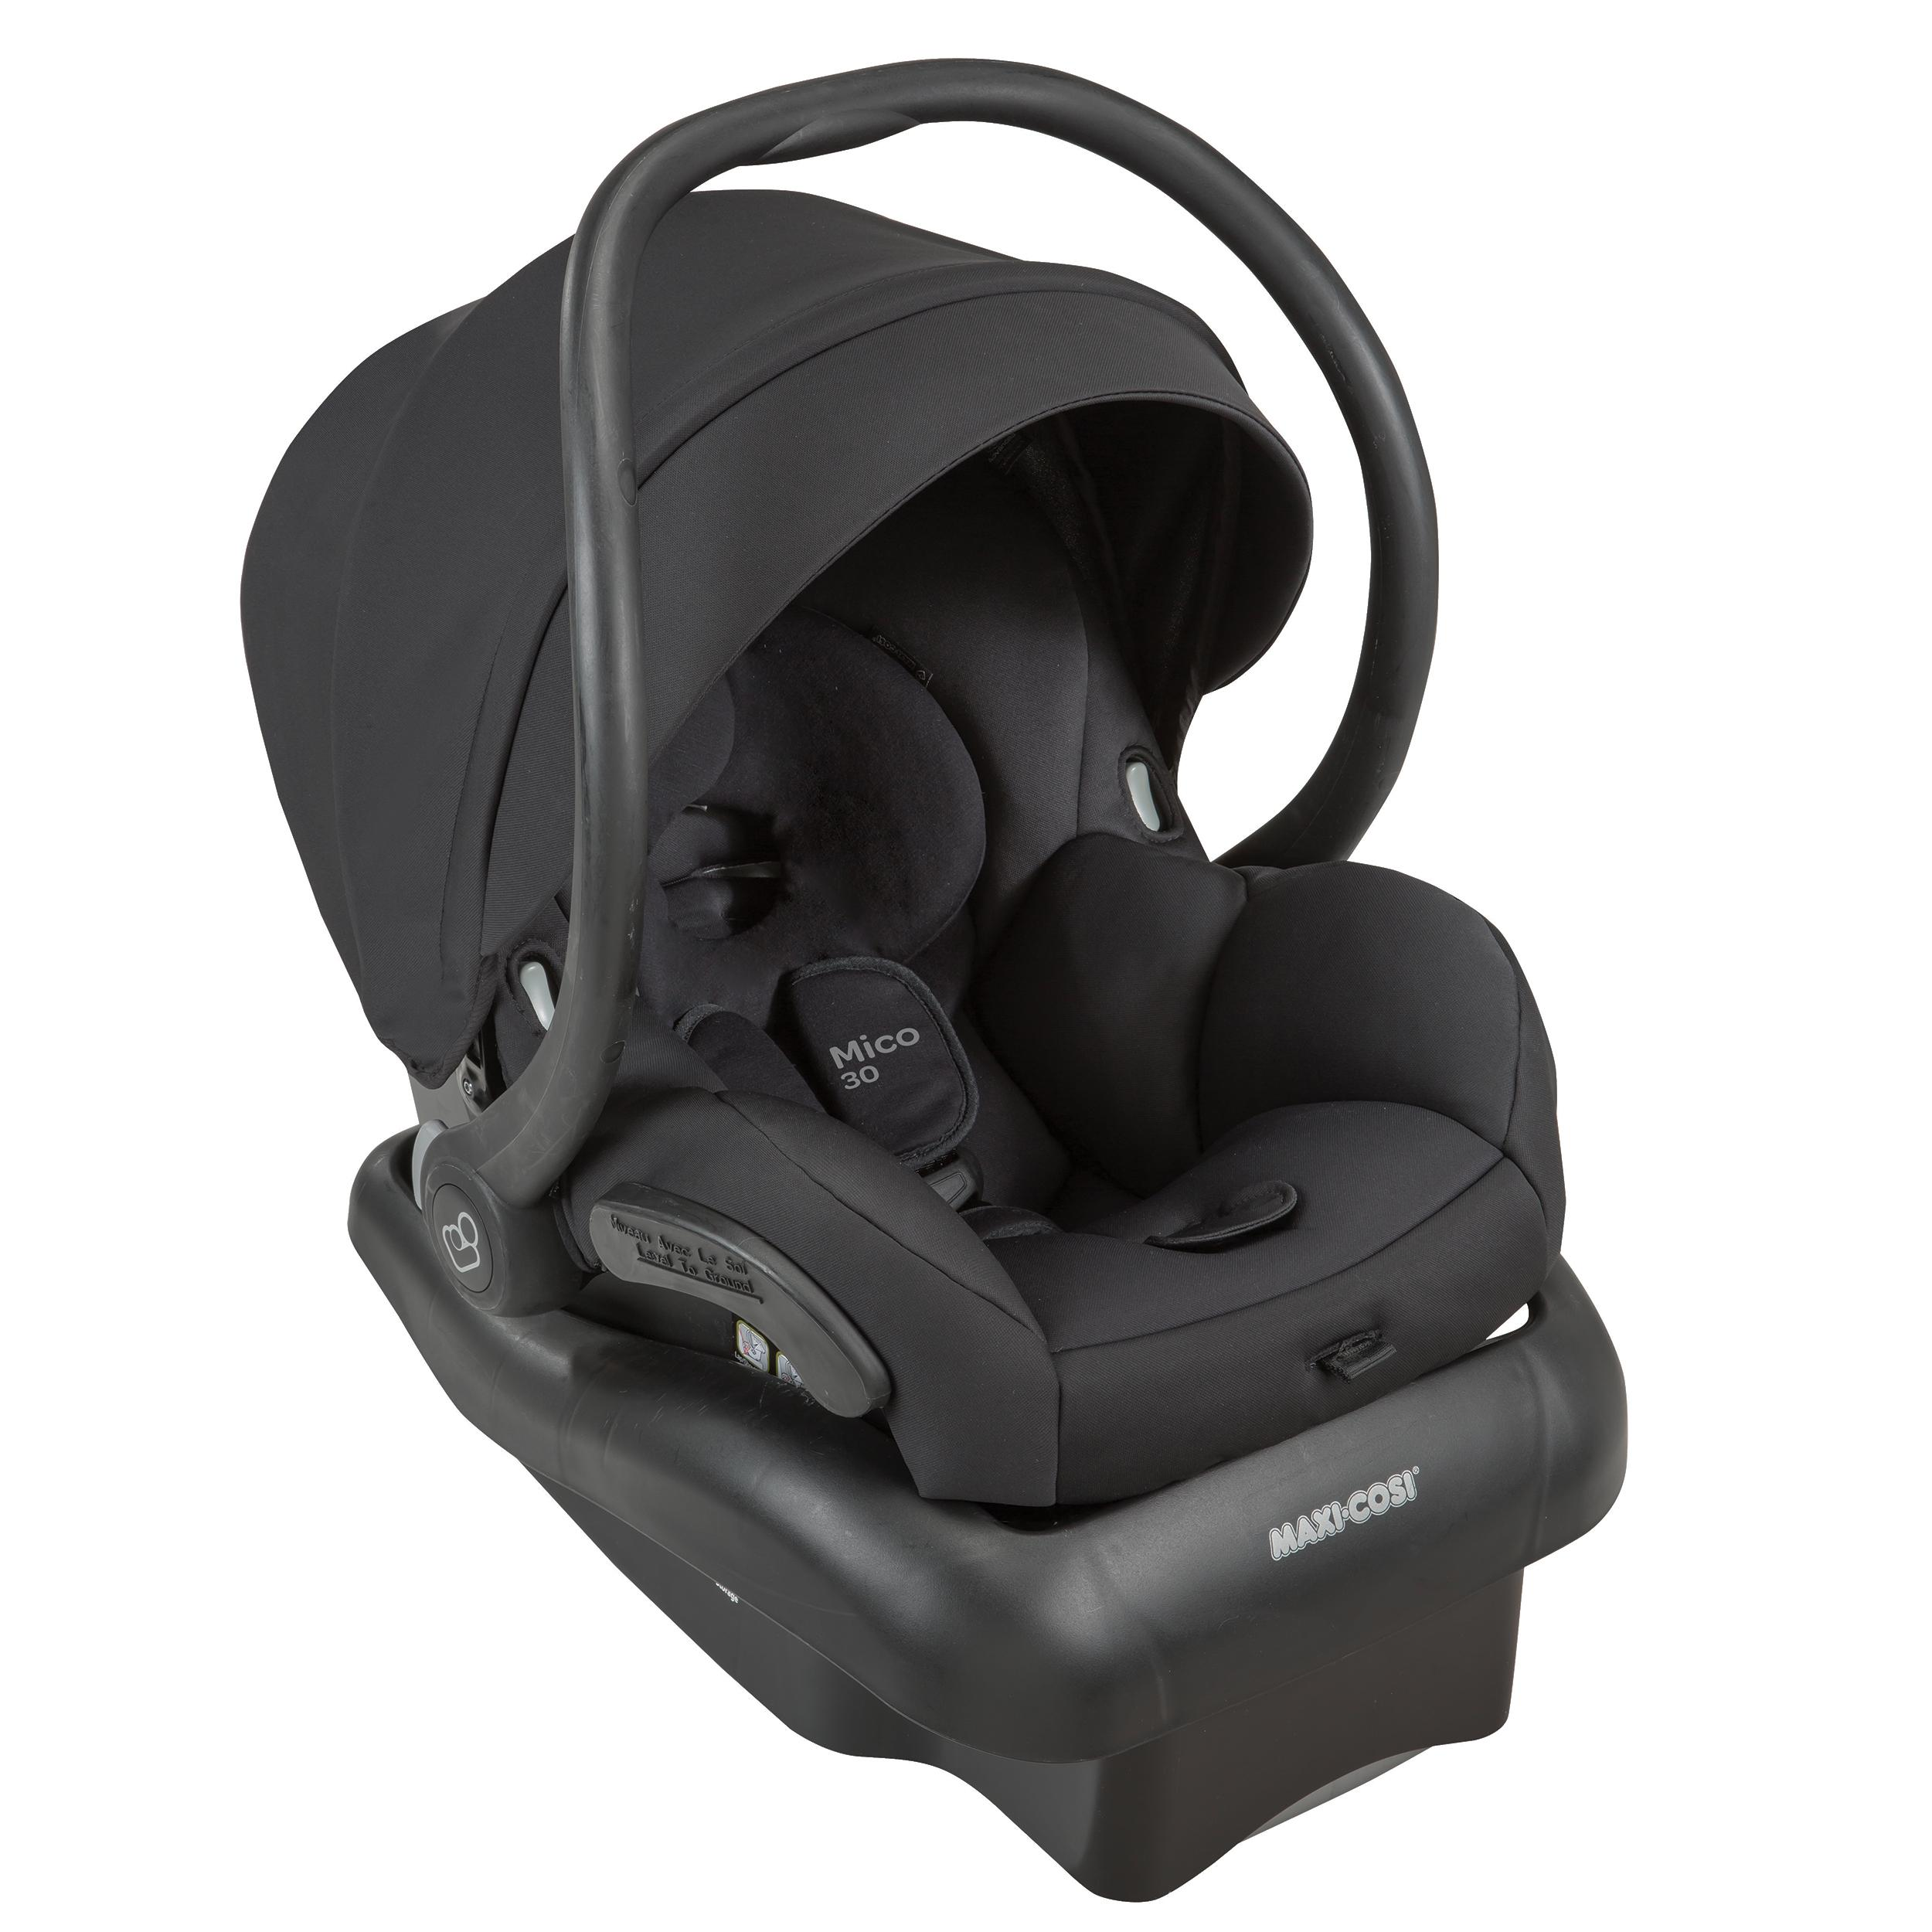 maxi cosi mico 30 infant car seat devoted black amazon. Black Bedroom Furniture Sets. Home Design Ideas